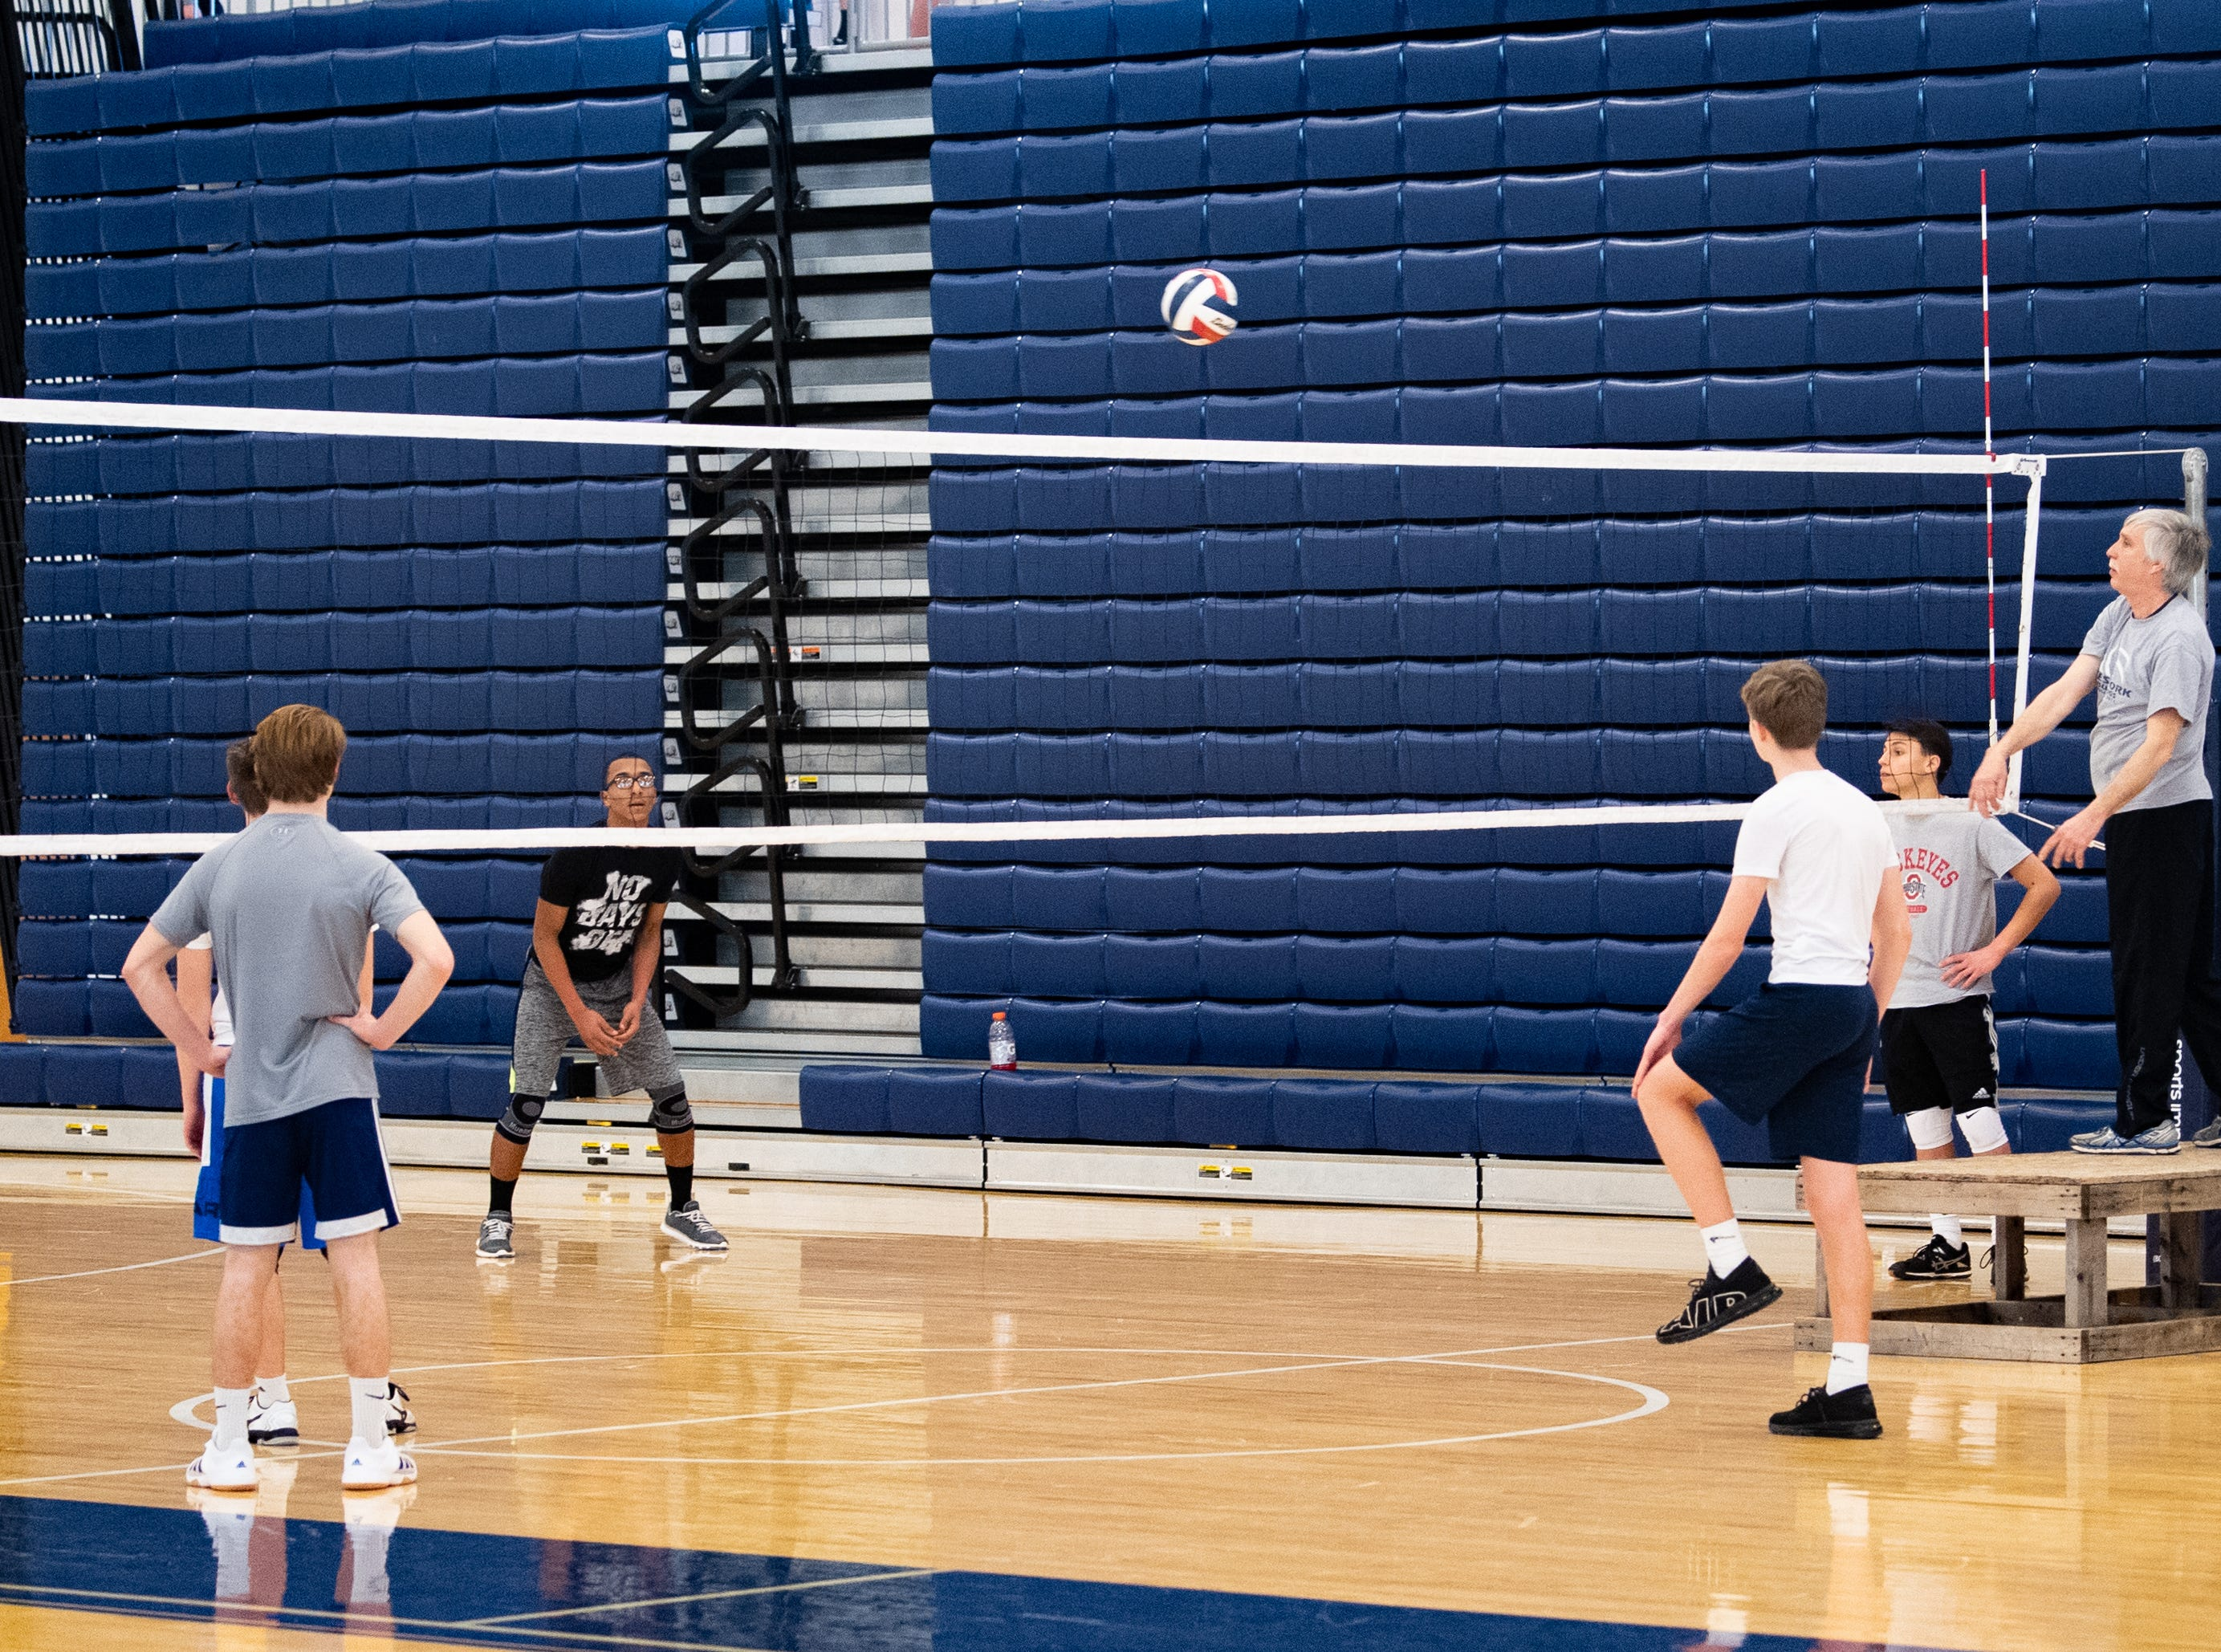 Coaches spike the ball to players to see how they handle the situation, March 5, 2019.